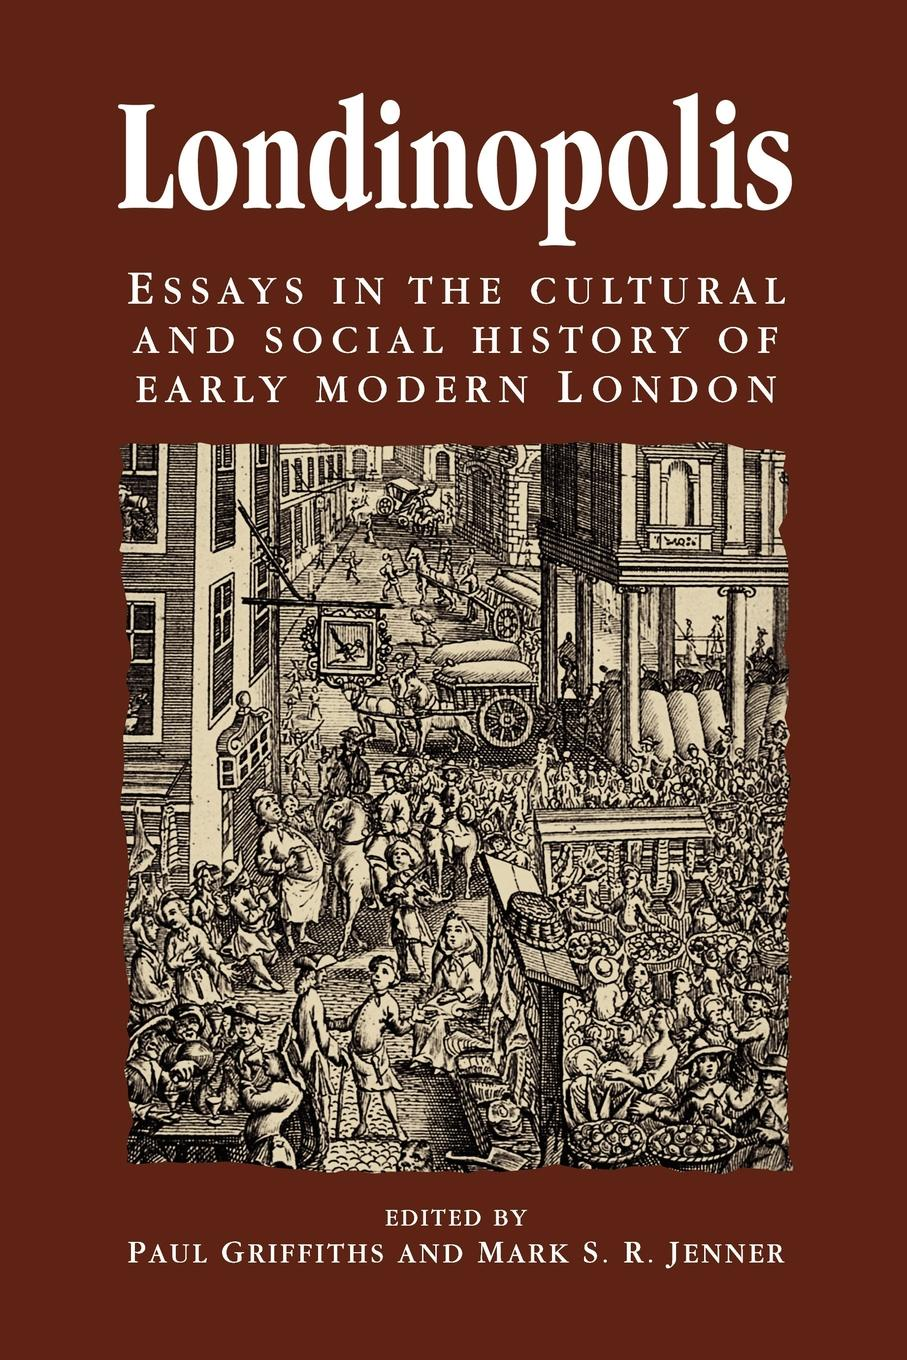 Londinopolis, C.1500 - C.1750. Essays in the Cultural and Social History of Early Modern London peter herman c a short history of early modern england british literature in context